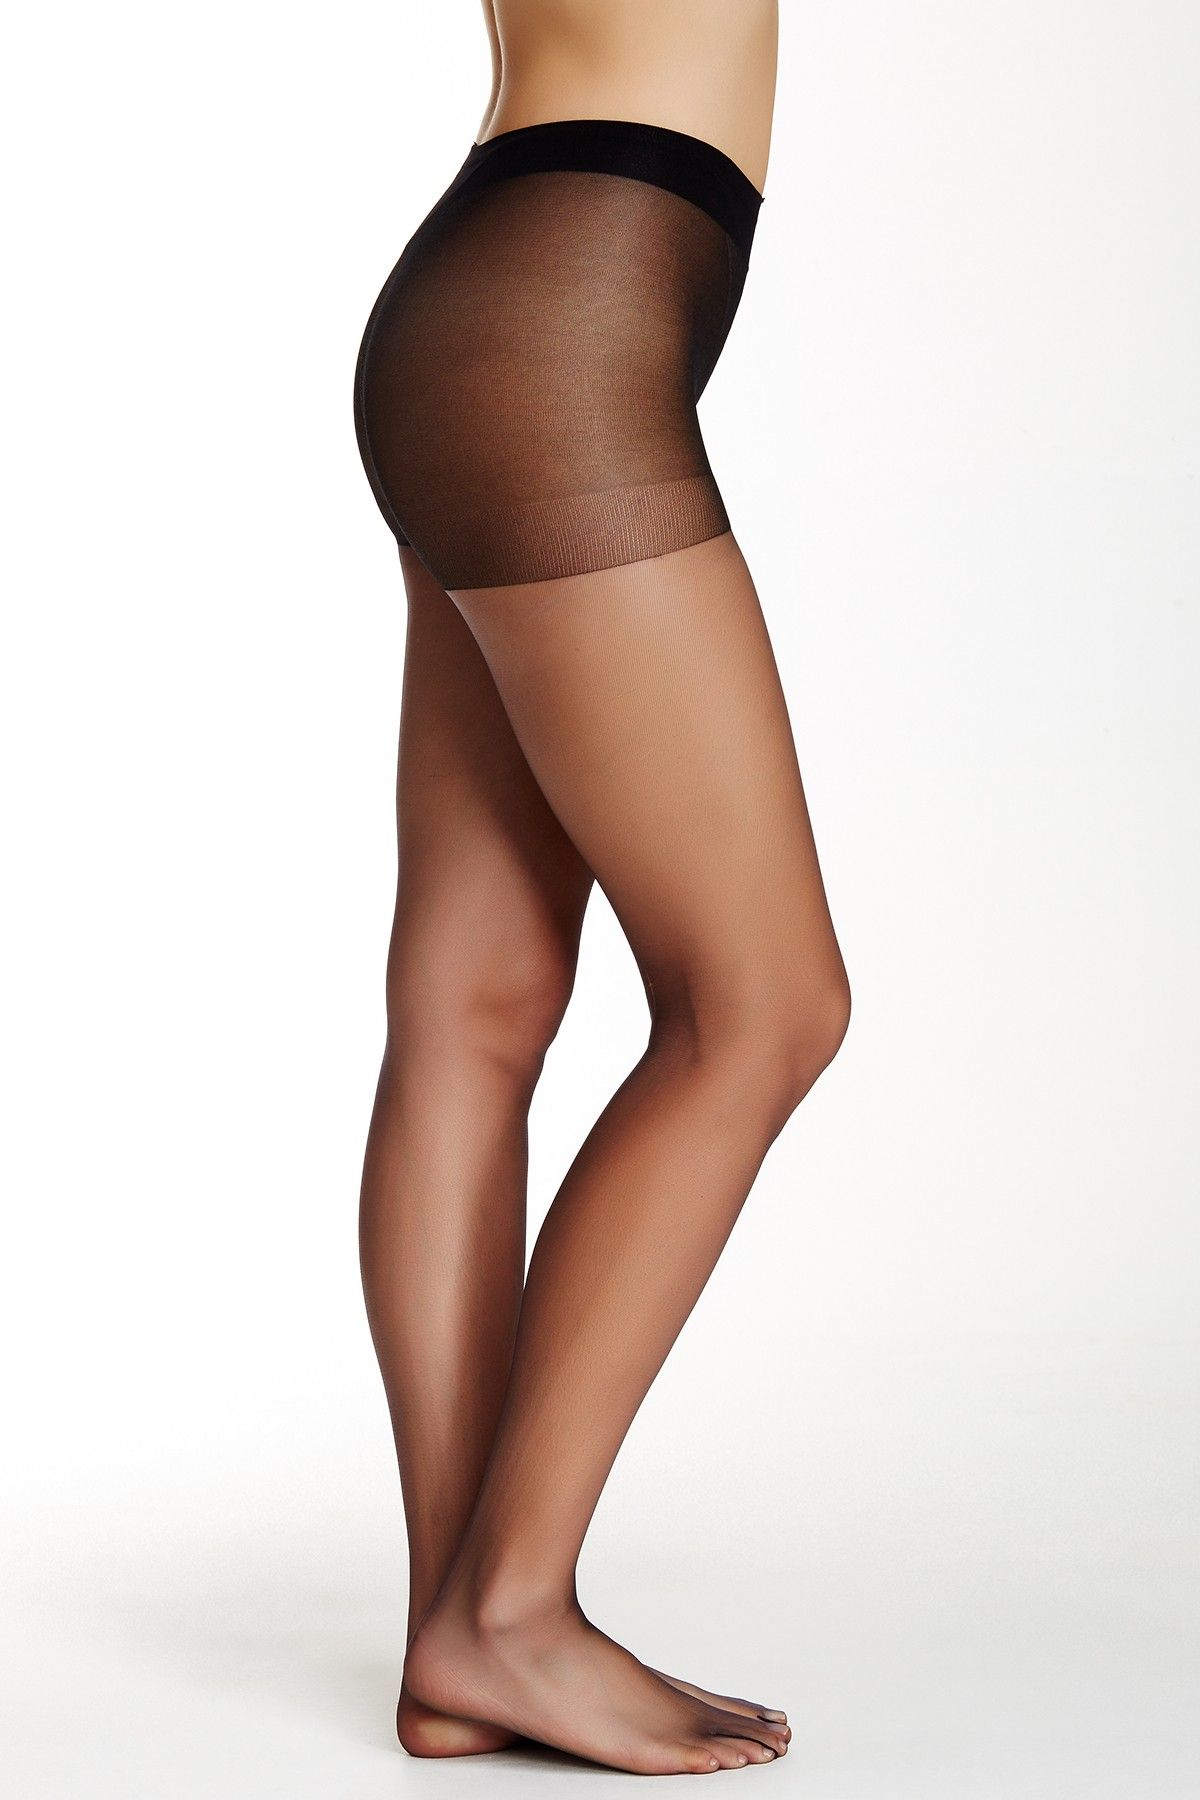 35b39df7ddf Image of shimera Ultra Sheer Control Top Pantyhose (Plus Size Available)